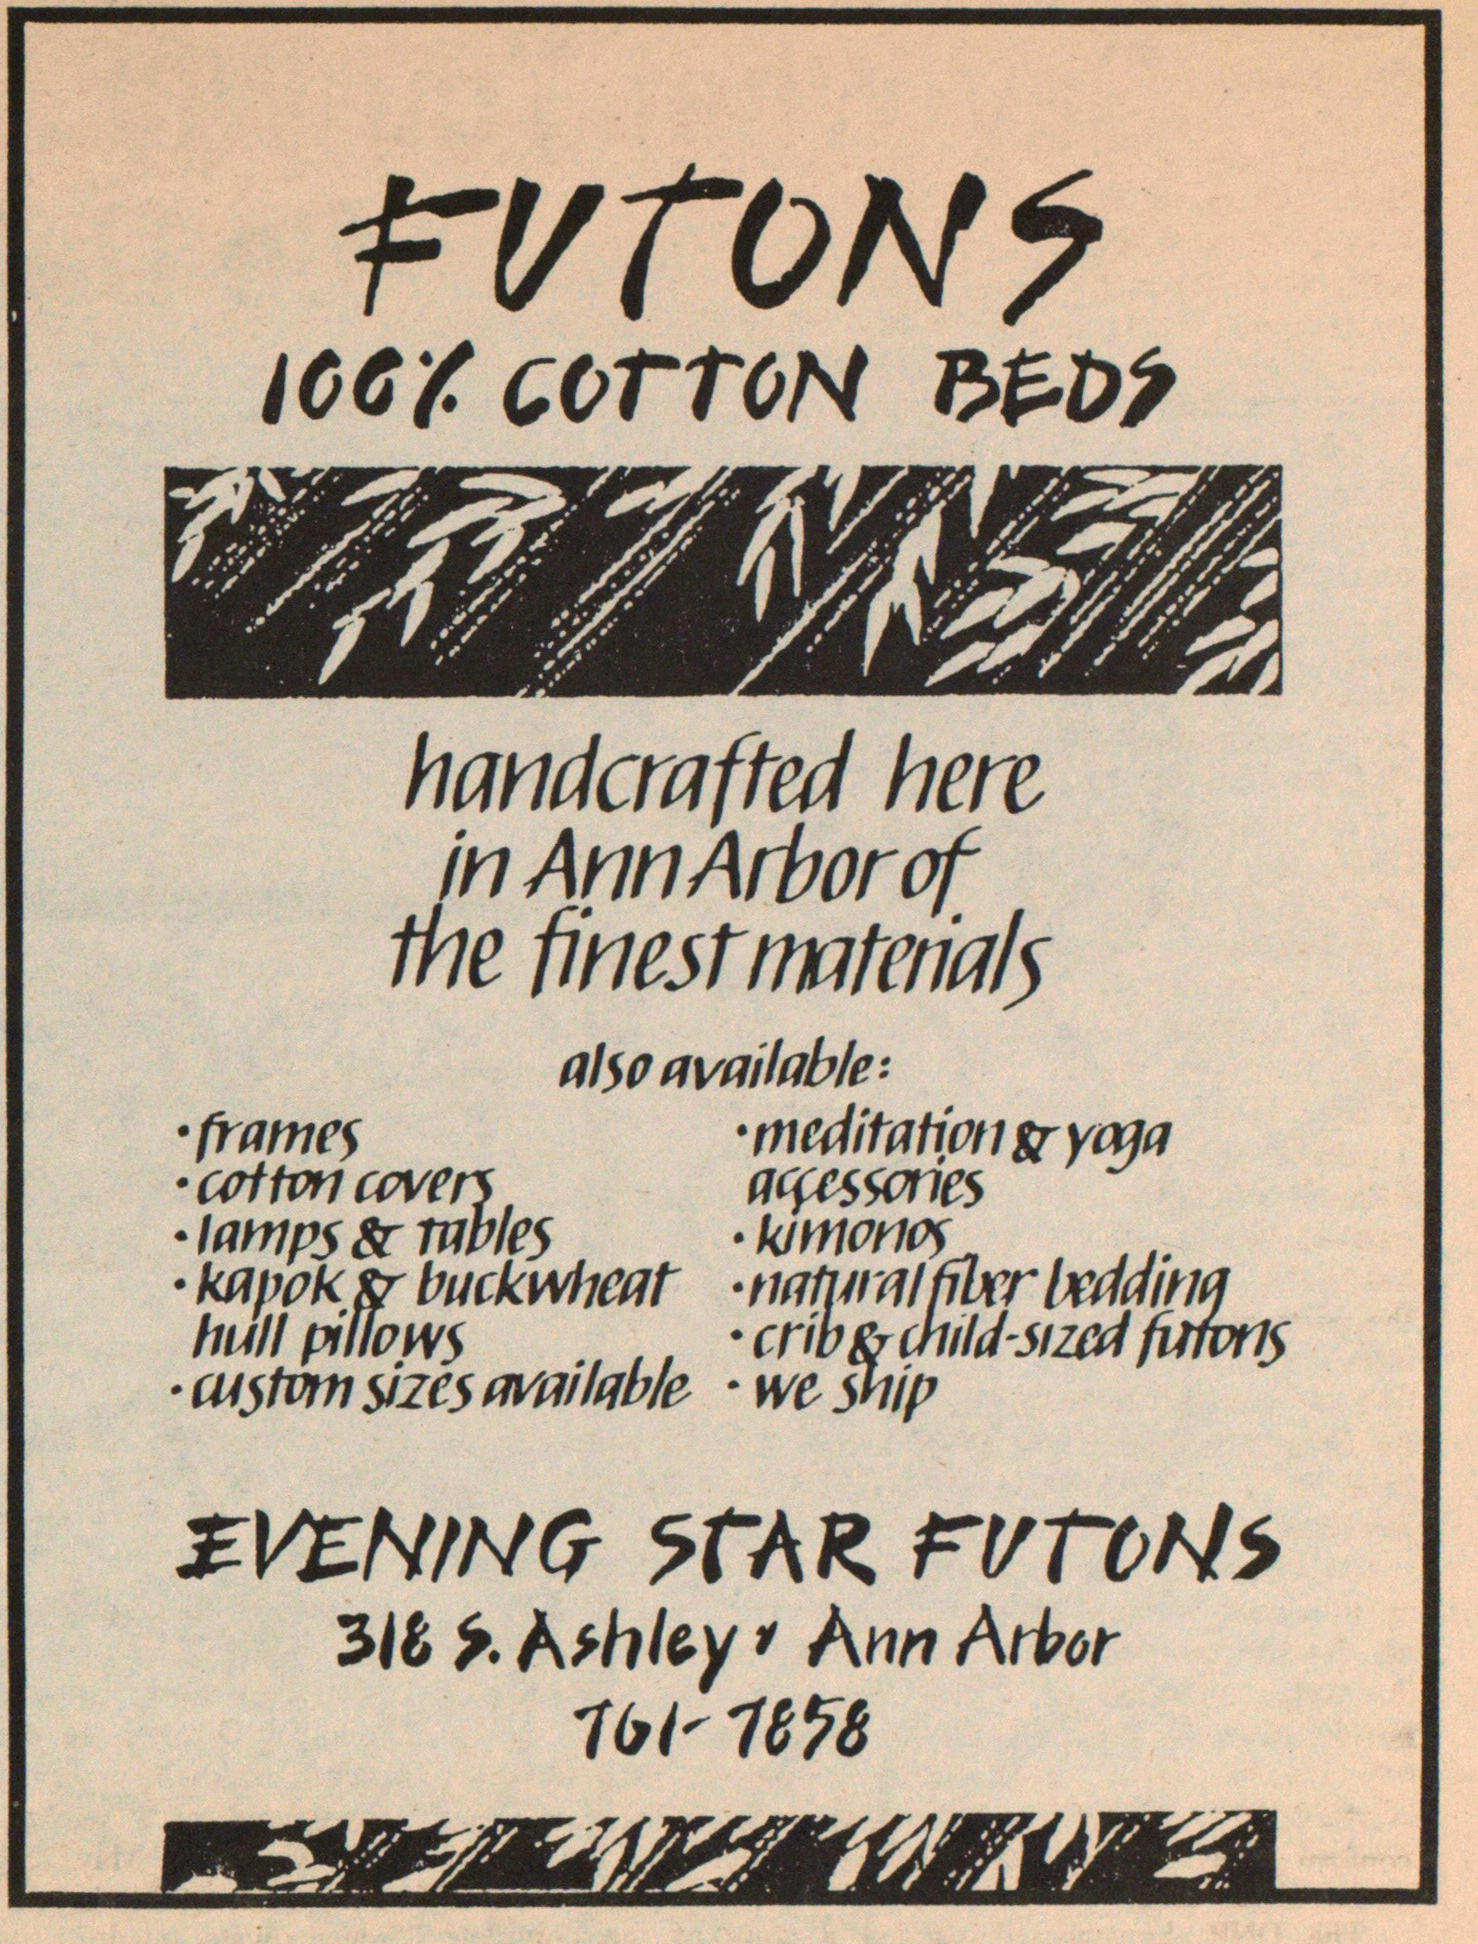 Evening Star Futons image